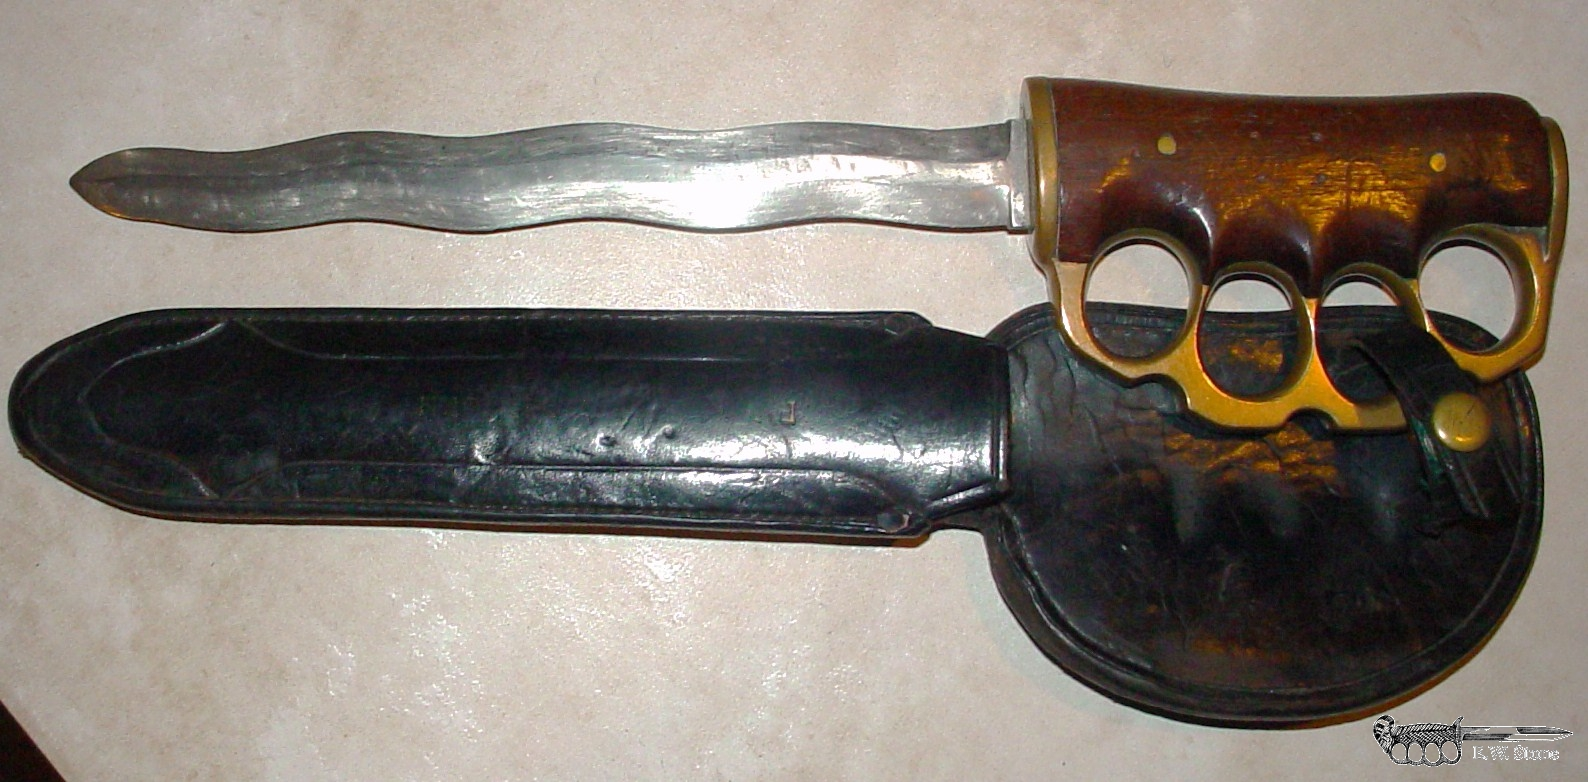 W. H. Messenger Knuckle Knife